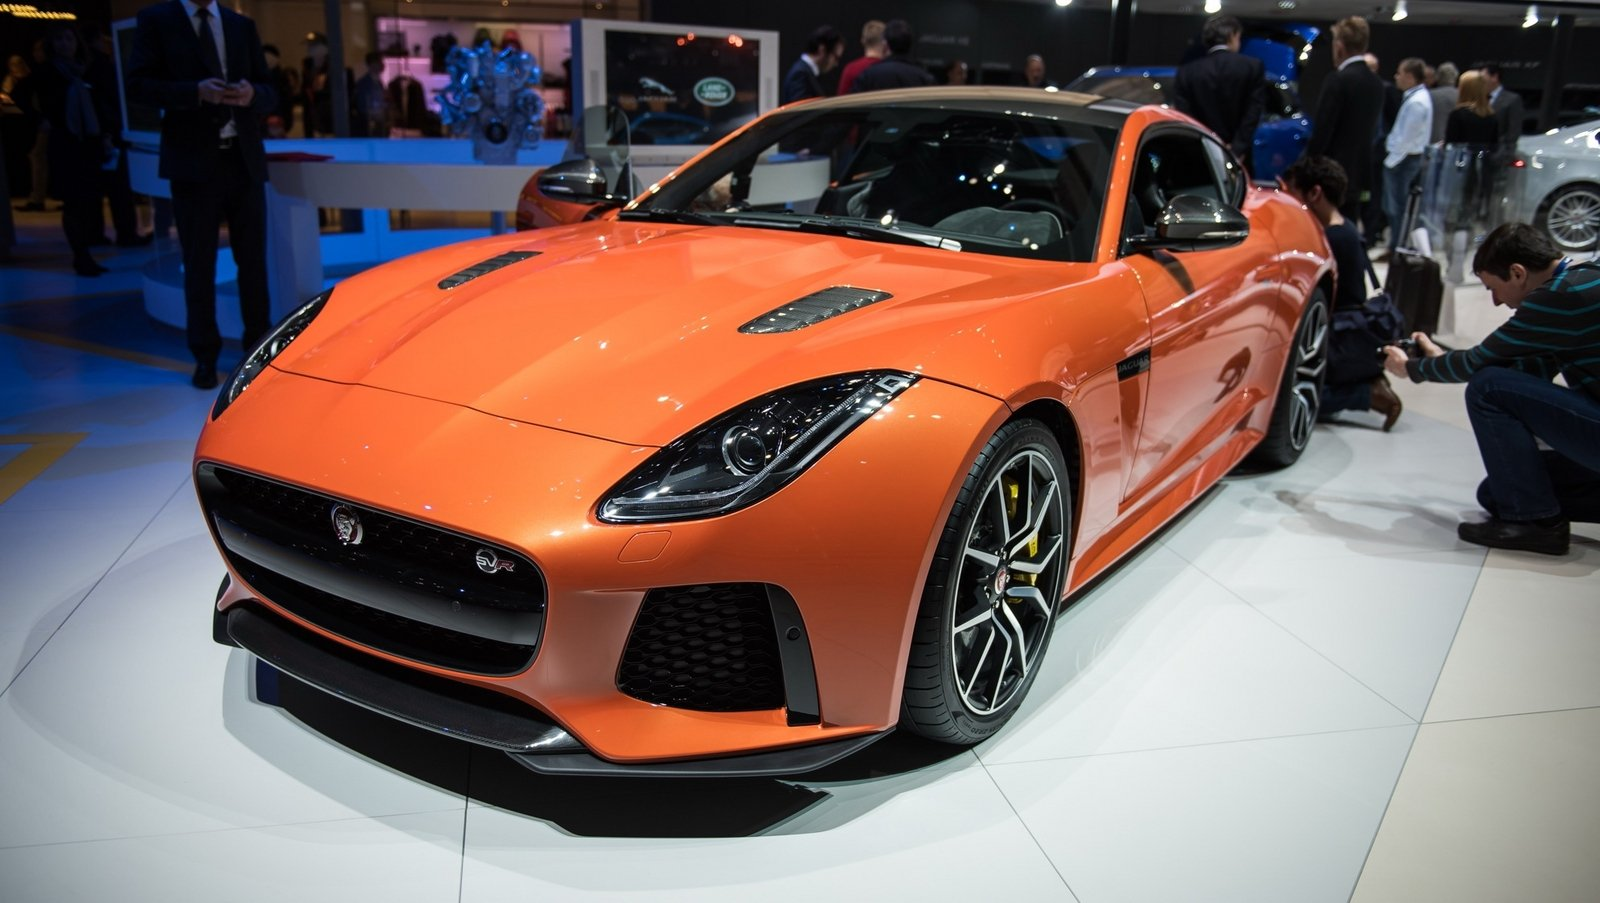 2017 Jaguar F-Type SVR Coupe Review - Top Speed